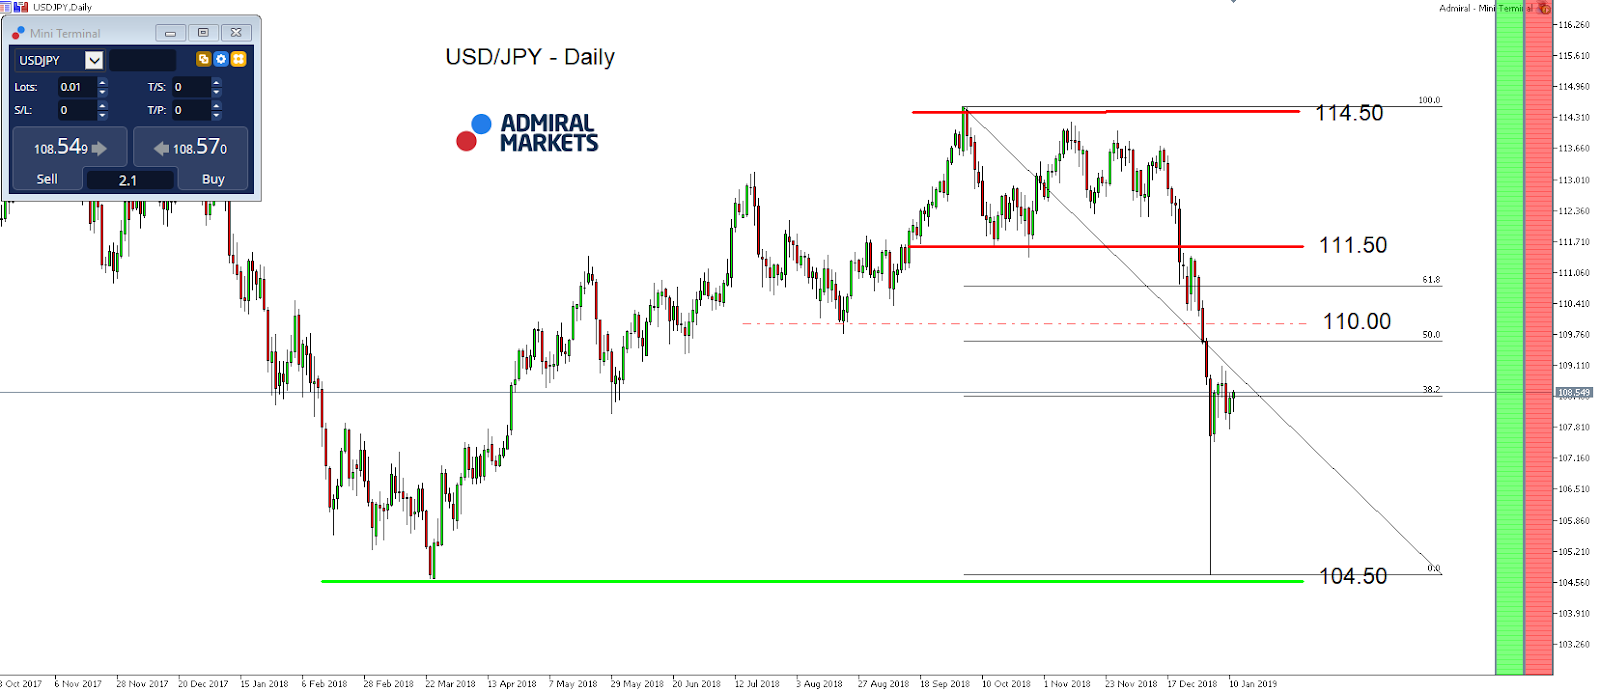 USD/JPY Daily Chart - MetaTrader 5 Supreme Edition